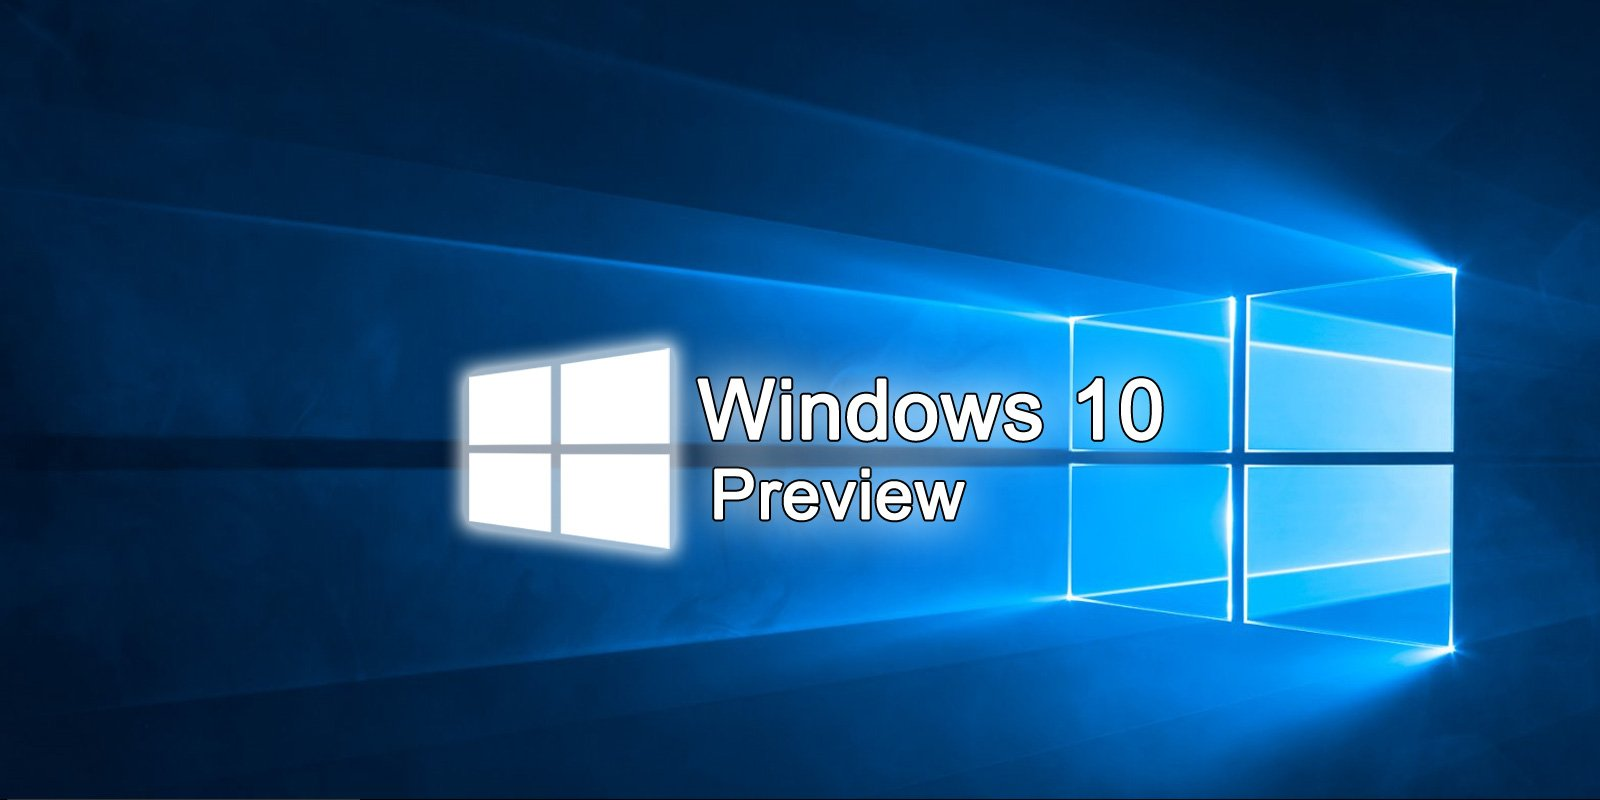 Windows 10 Preview build 20262 released to Insiders